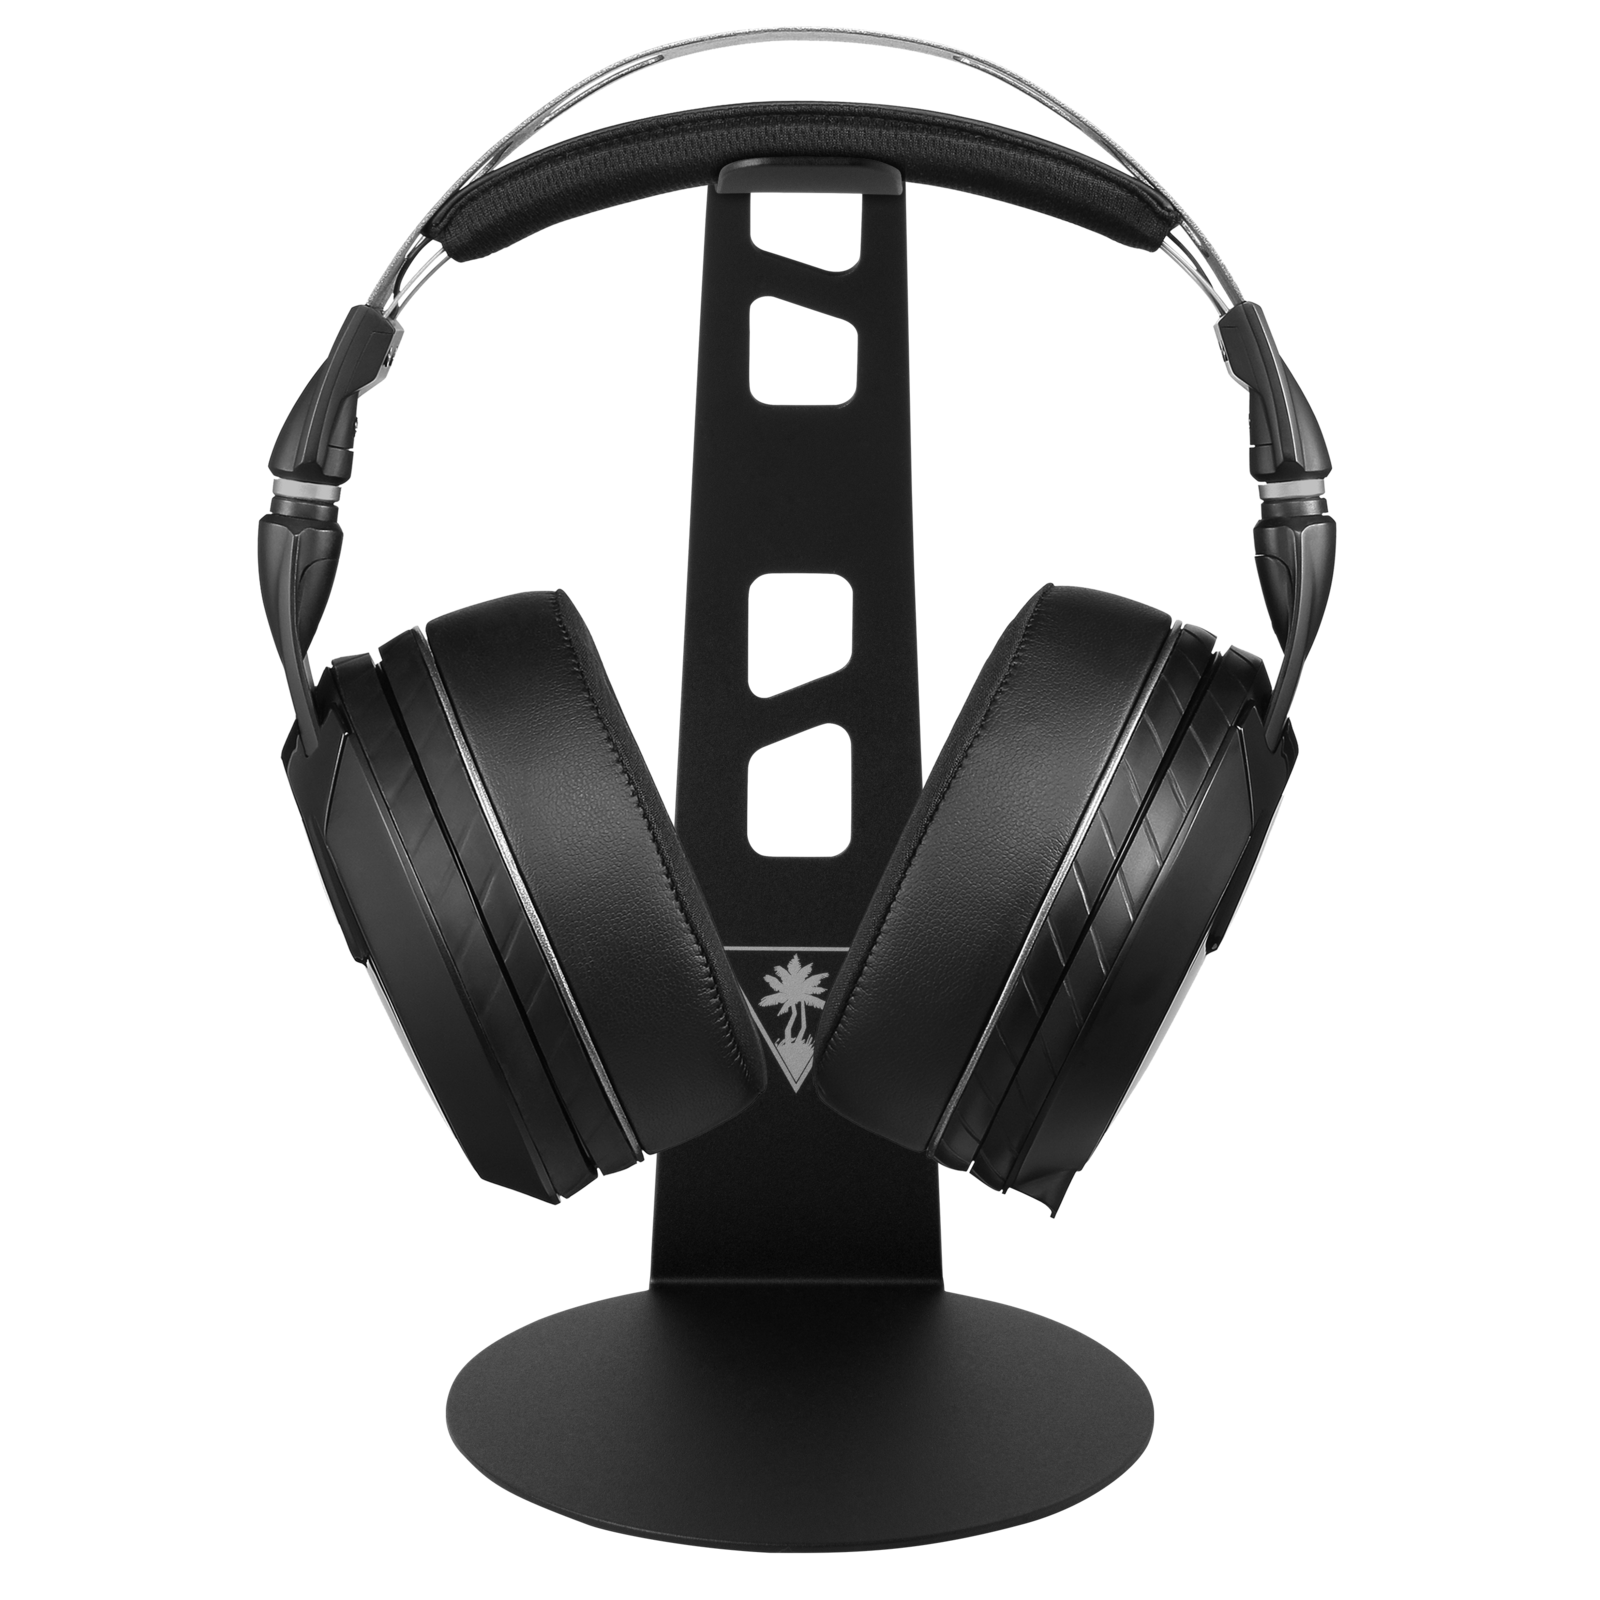 Turtle Beach HS2 Headset Stand for PS4 image